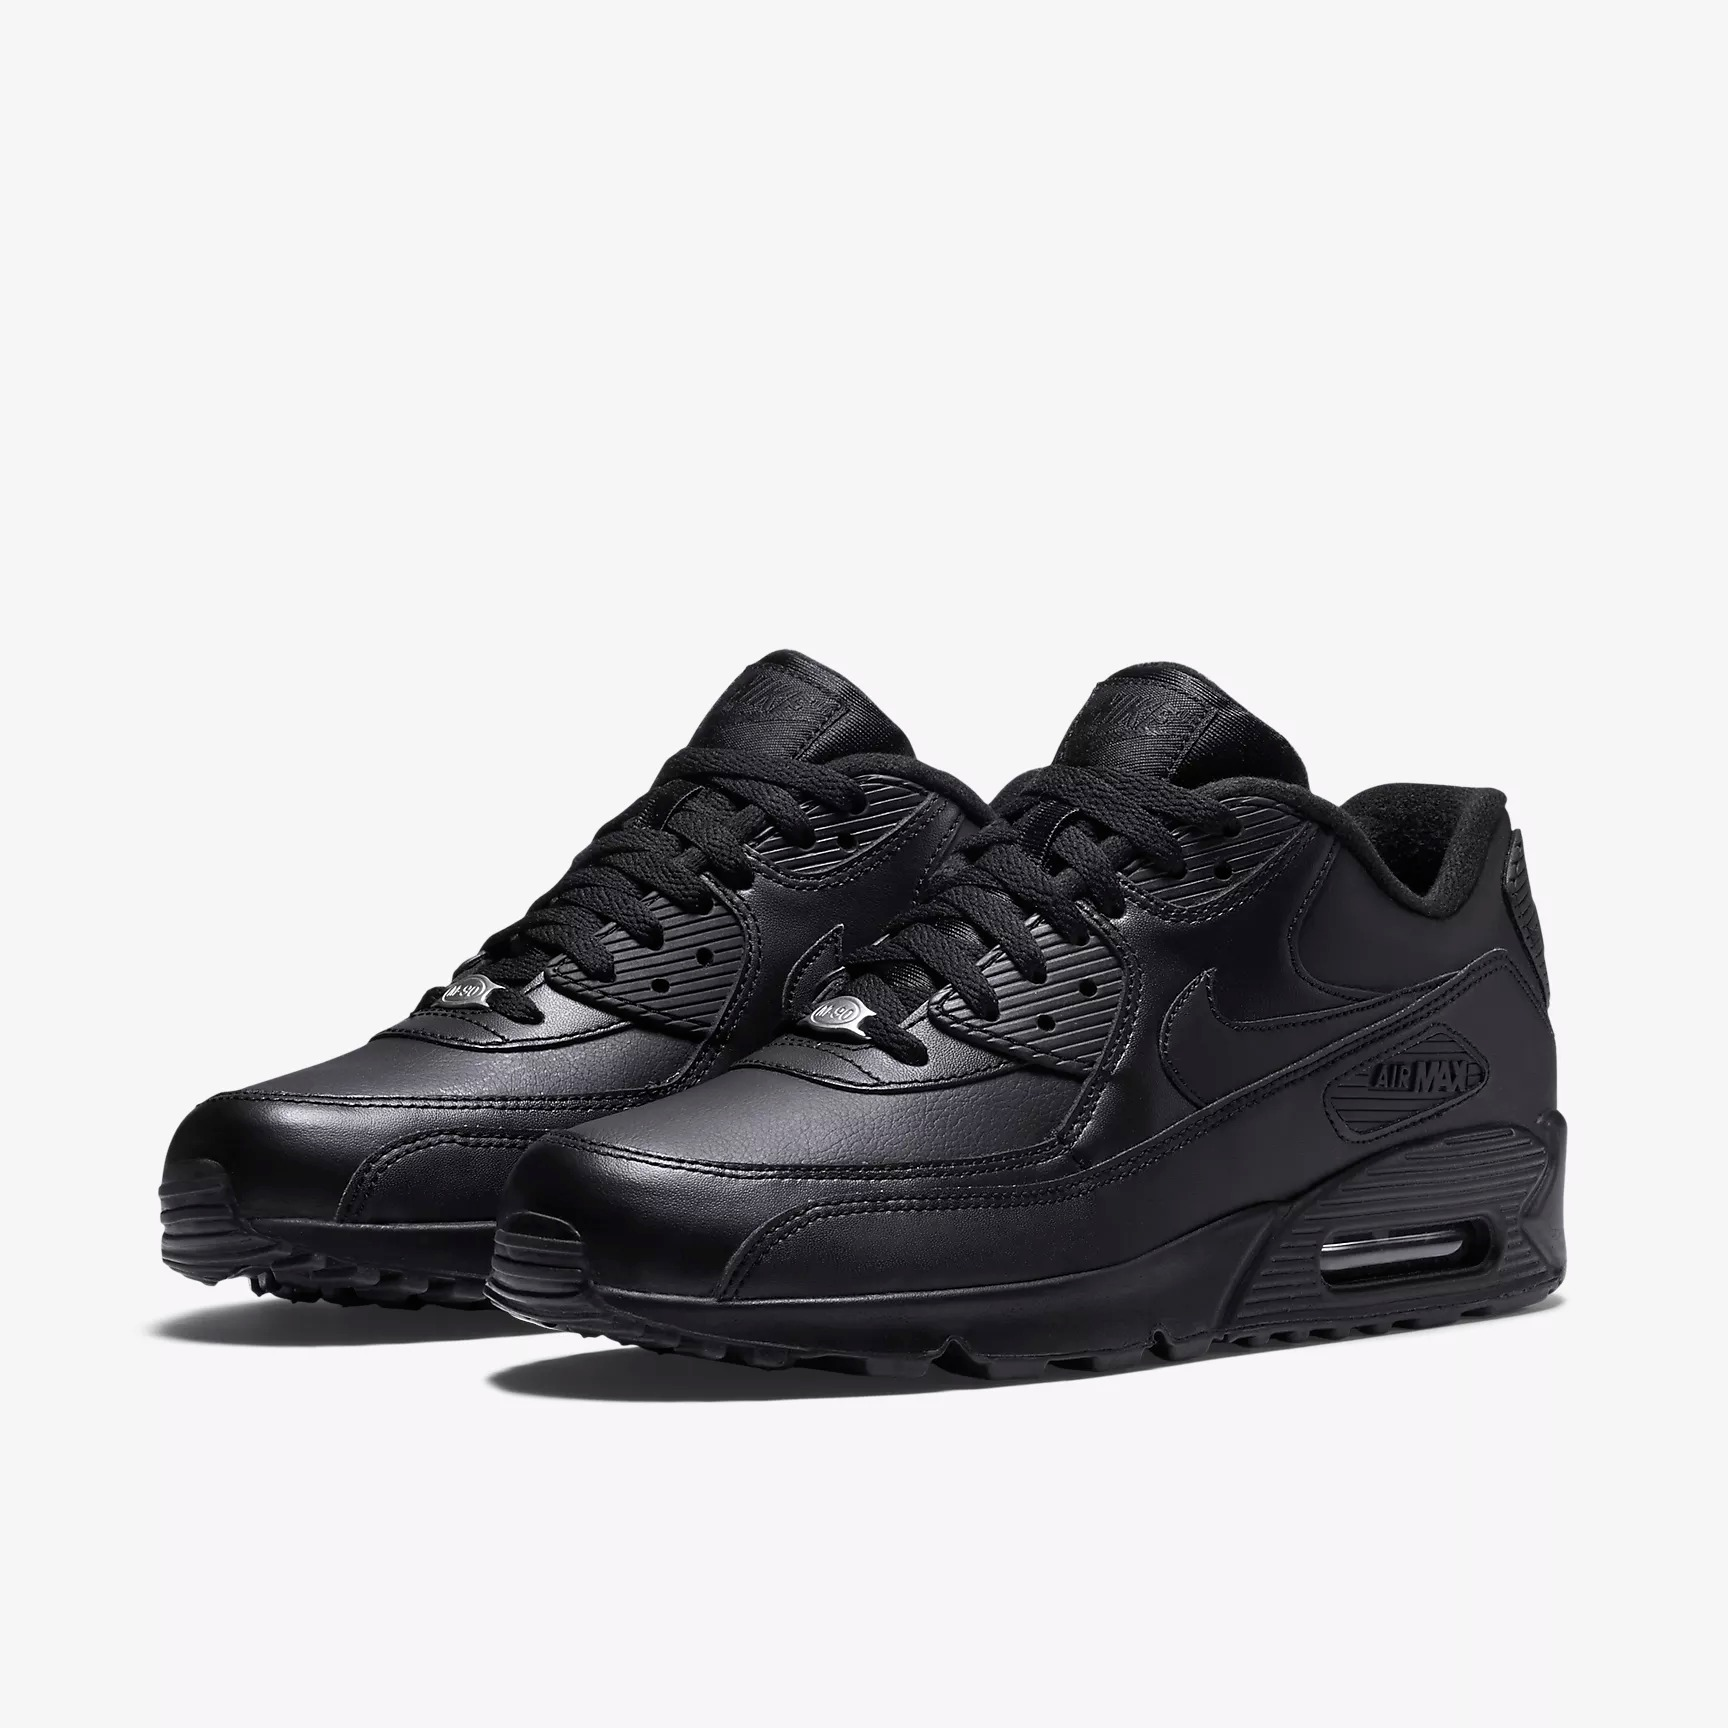 online store e854e f32b3 Nike Air Max 90 Leather Sneakers - SPORT SHOES Lifestyle Shoes  Sneakers -  Superfanas.lt